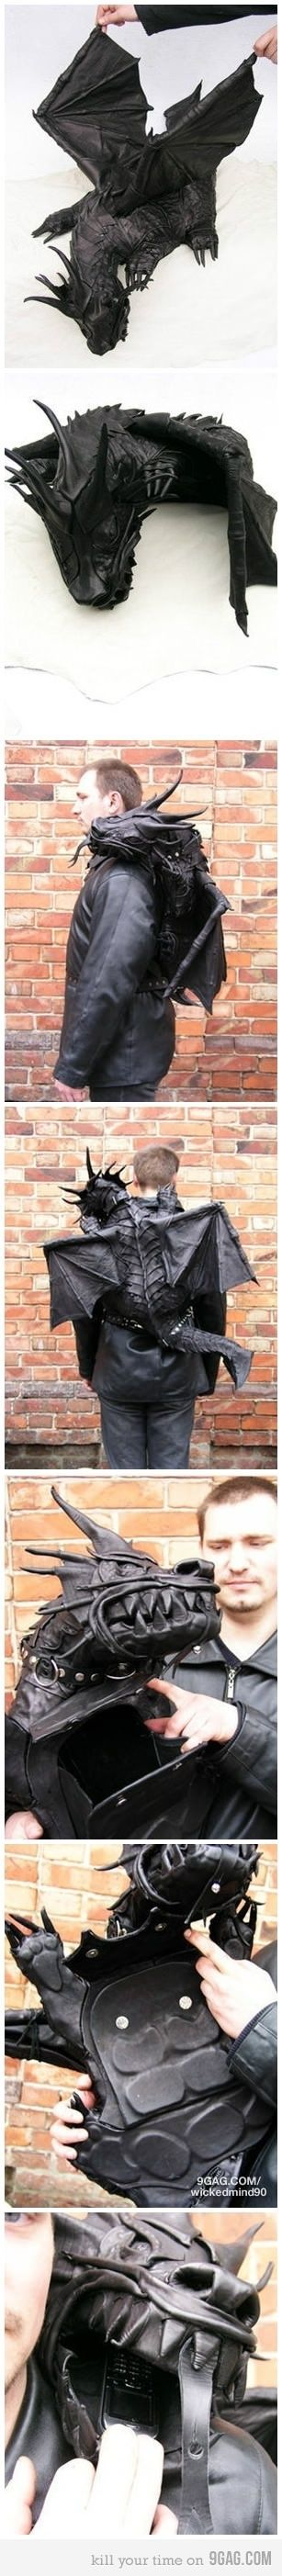 Leather Dragon Backpack @Bronwyn Freeze . Slightly over the top but look at the work that's gone into this beast , beautiful